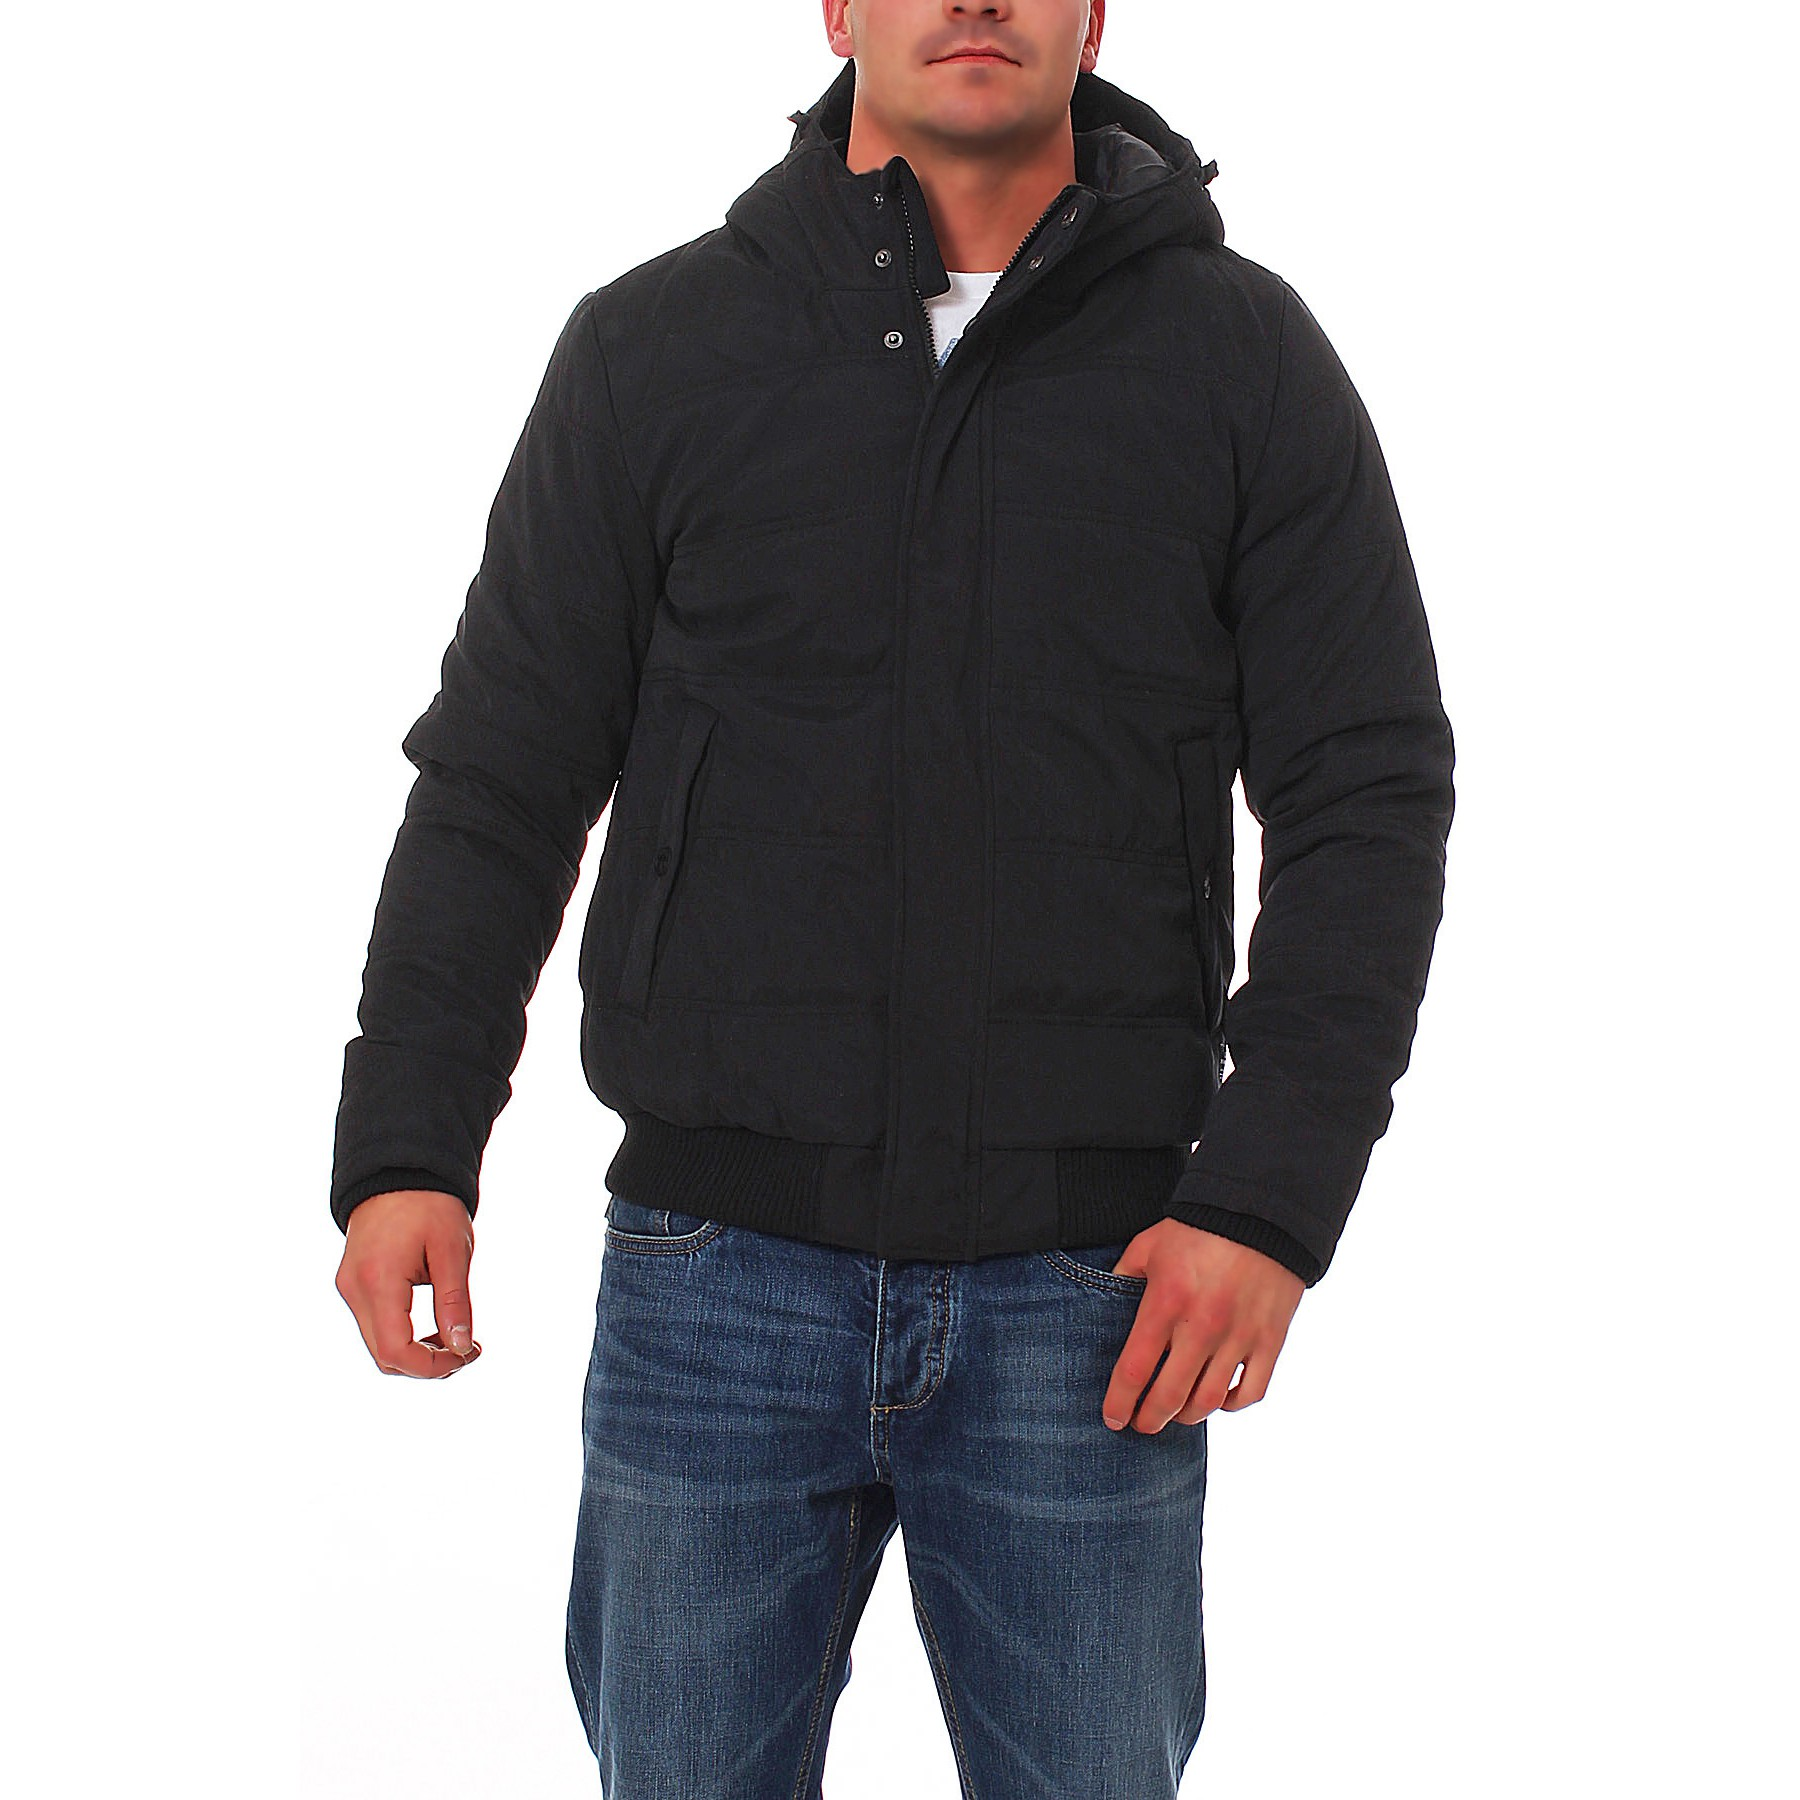 jack jones row bomber jacket herren winterjacke jacke gr. Black Bedroom Furniture Sets. Home Design Ideas